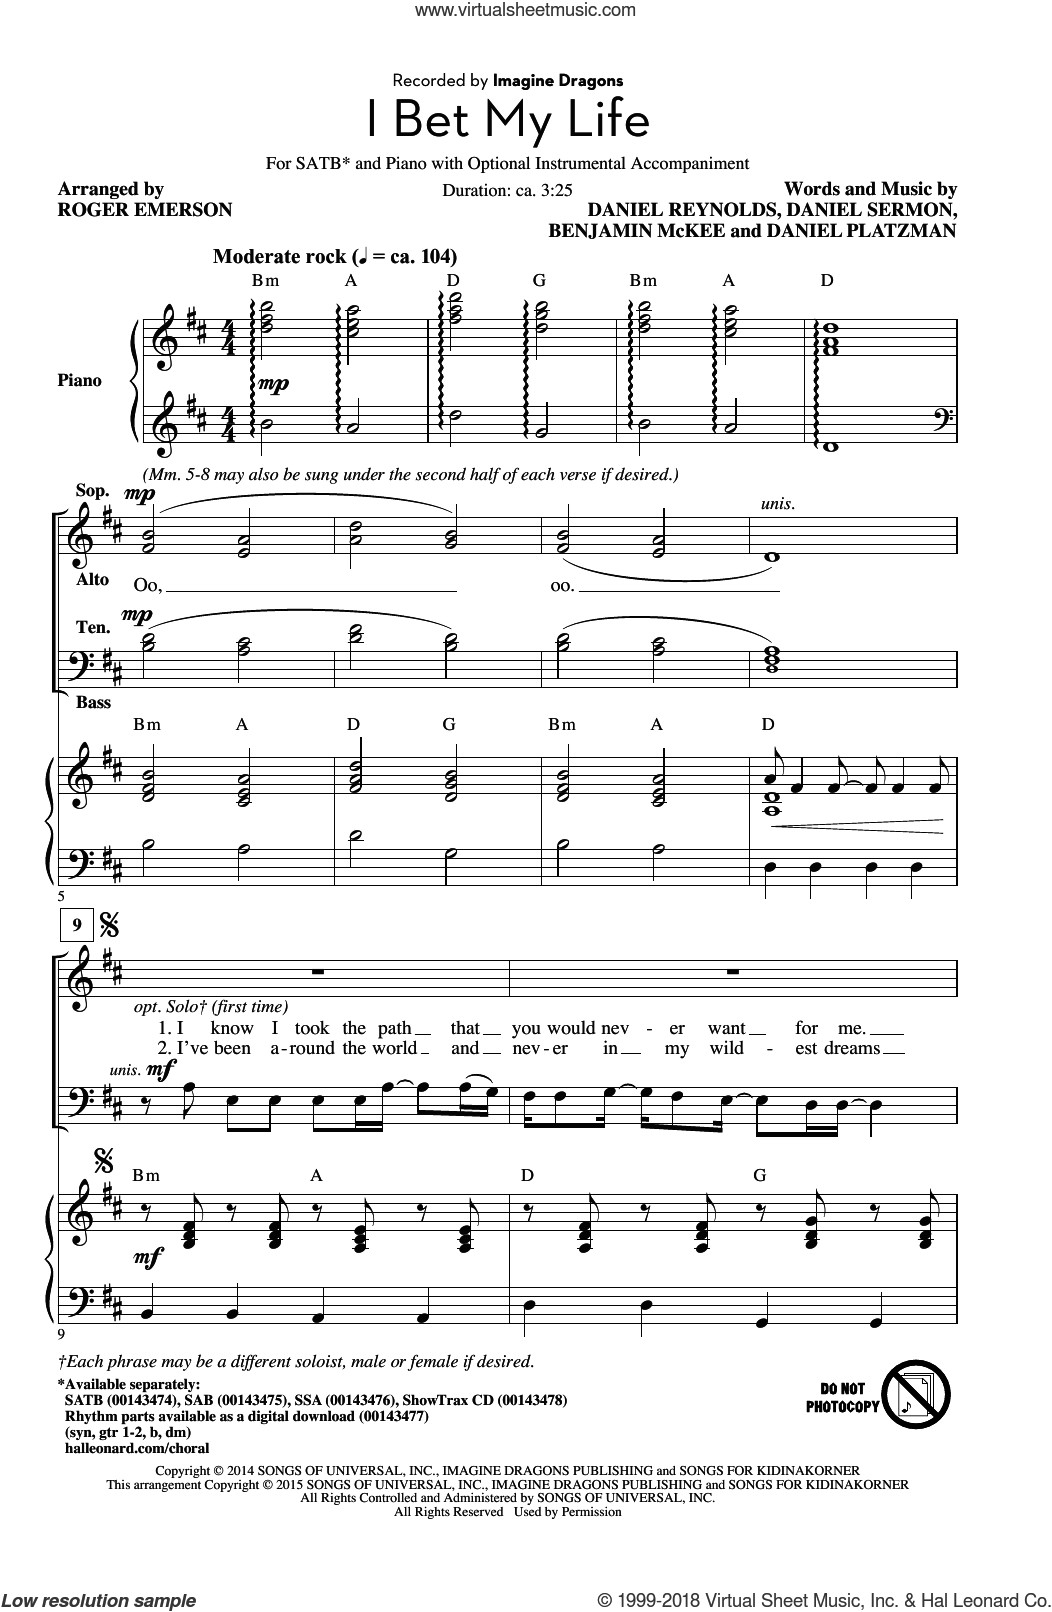 I Bet My Life sheet music for choir (SATB: soprano, alto, tenor, bass) by Roger Emerson, Benjamin McKee, Daniel Platzman, Daniel Reynolds, Daniel Sermon and Imagine Dragons, intermediate skill level